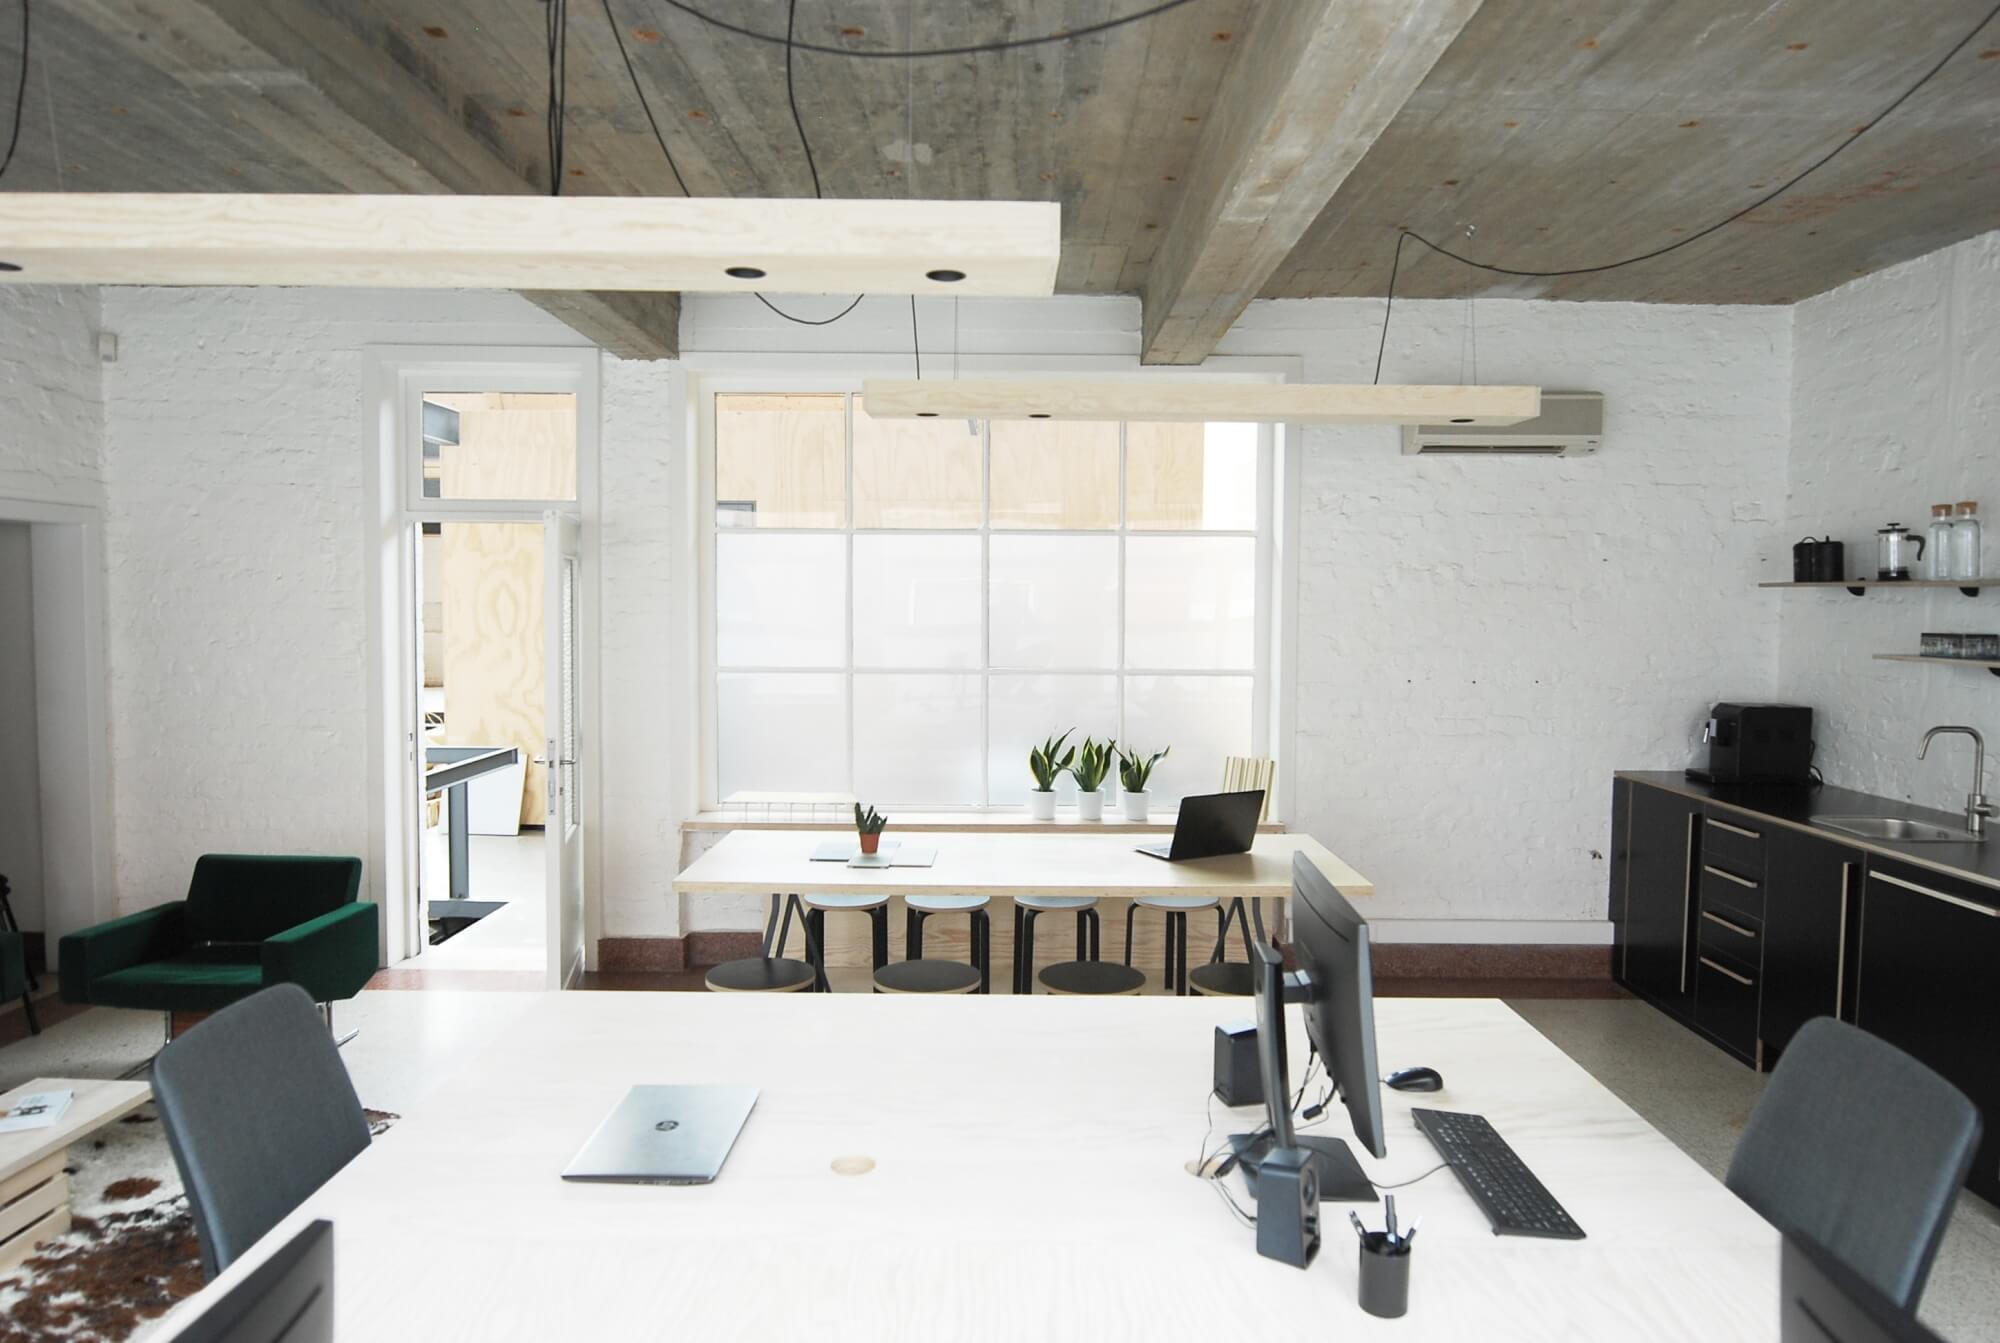 Architectural offices with white bricks, grey ceiling, and light plywood accents.